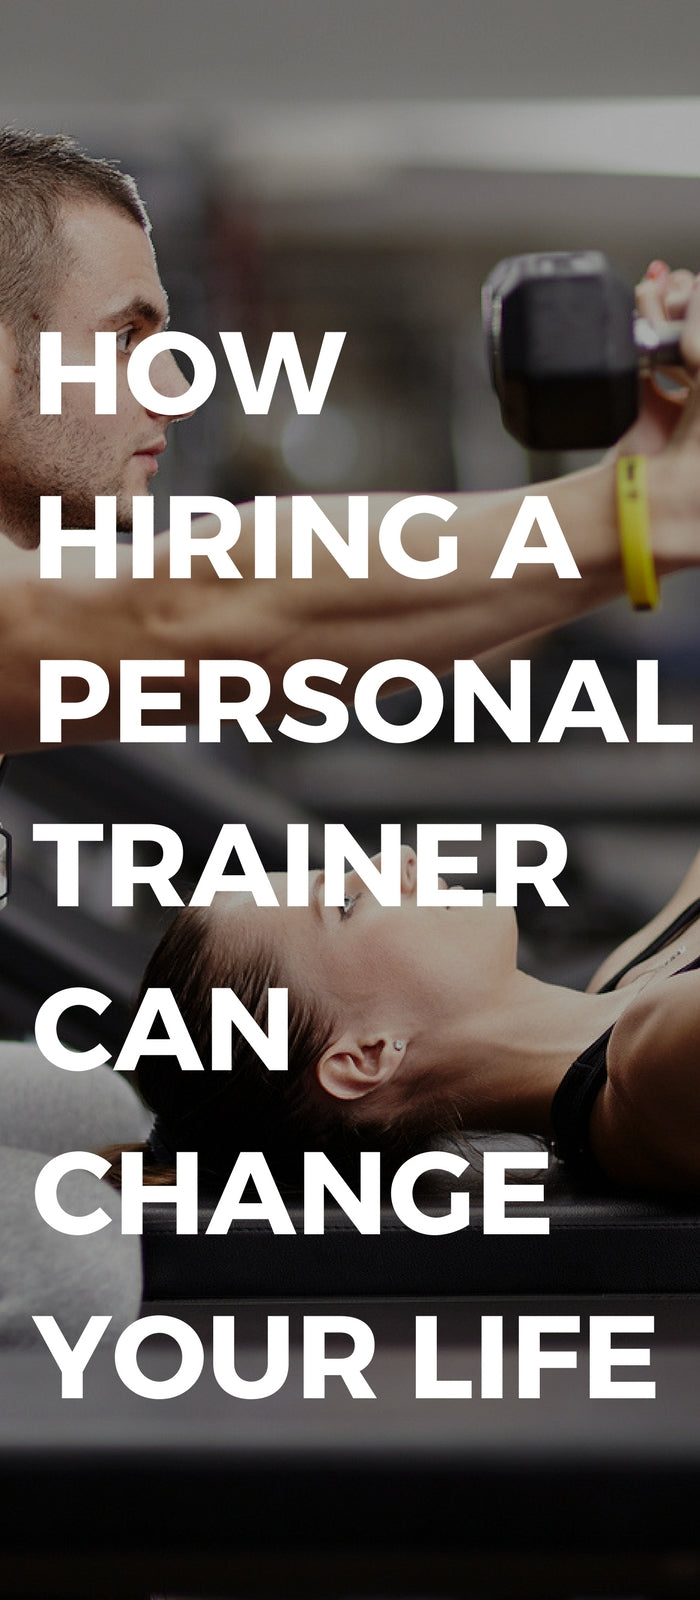 How hiring a personal trainer can change your life